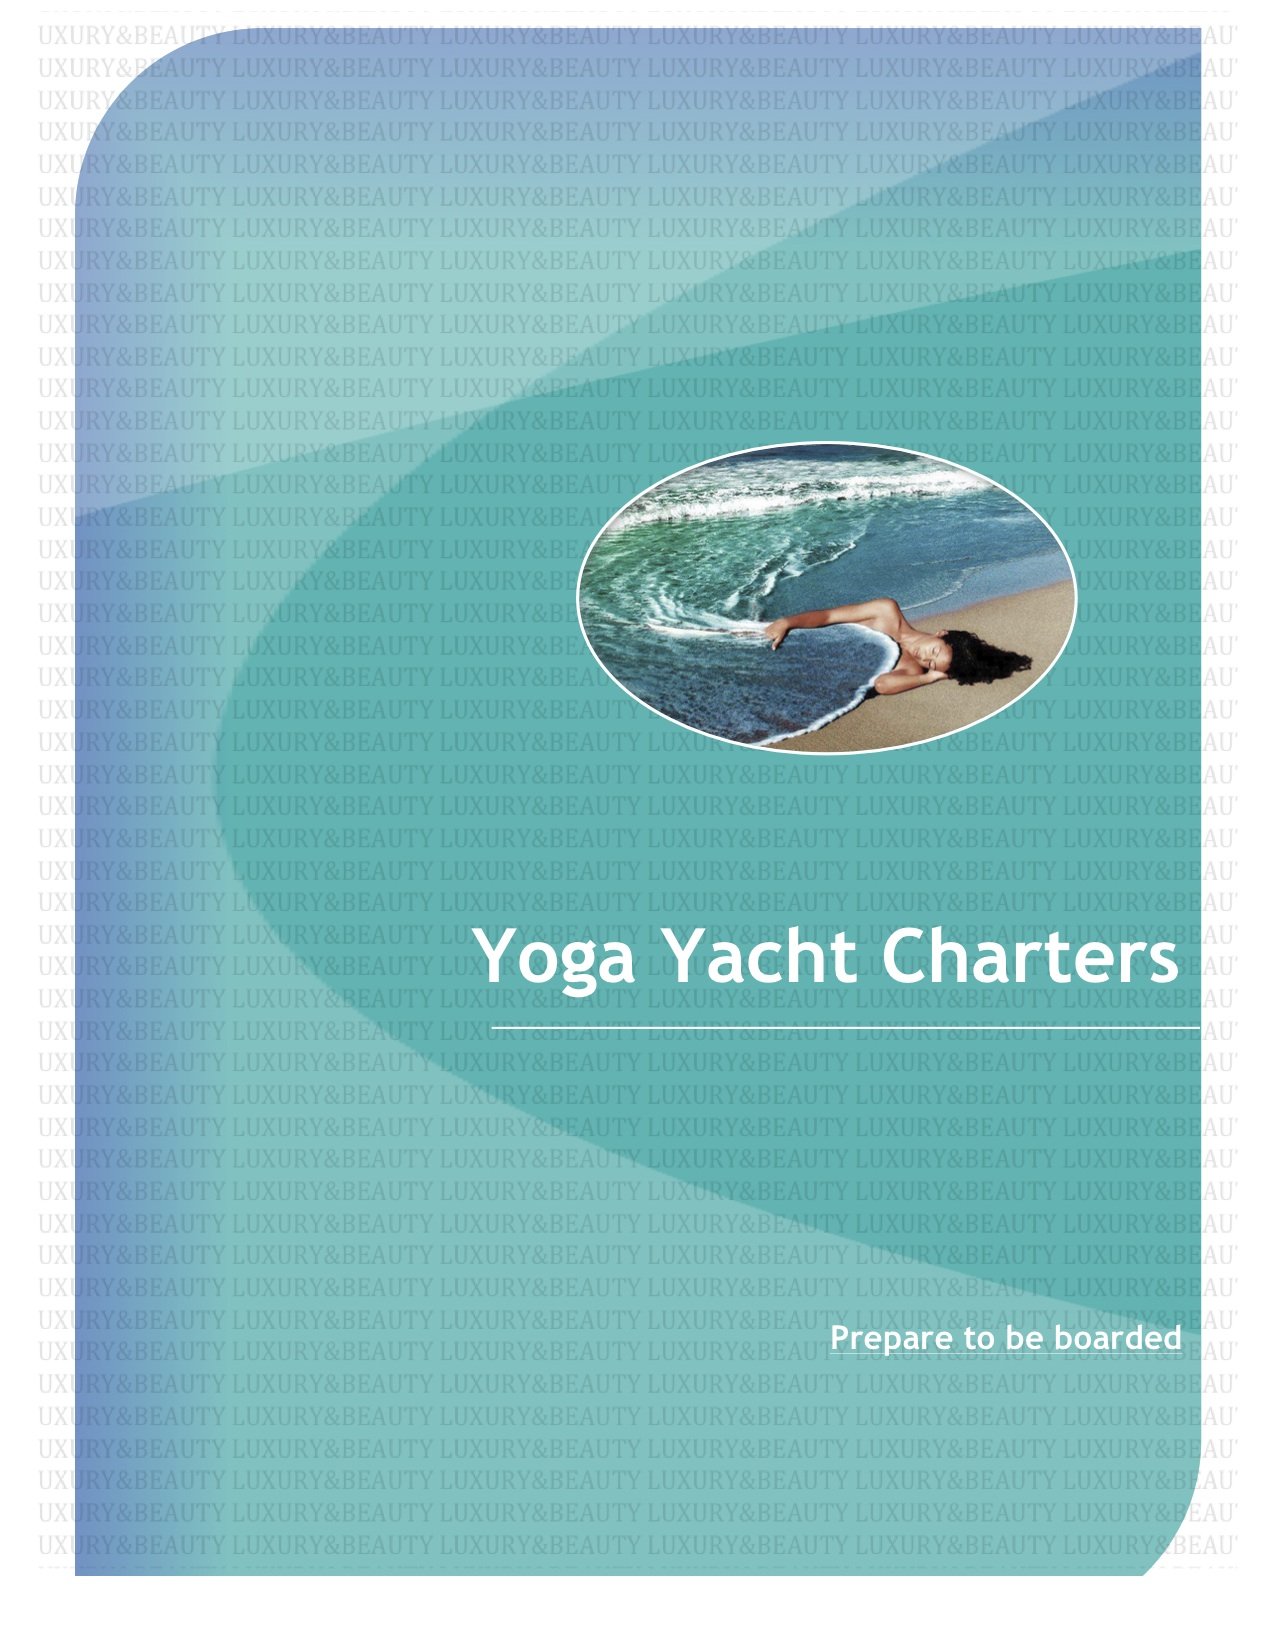 Luxury&Beauty_Yoga_Yacht.jpg1